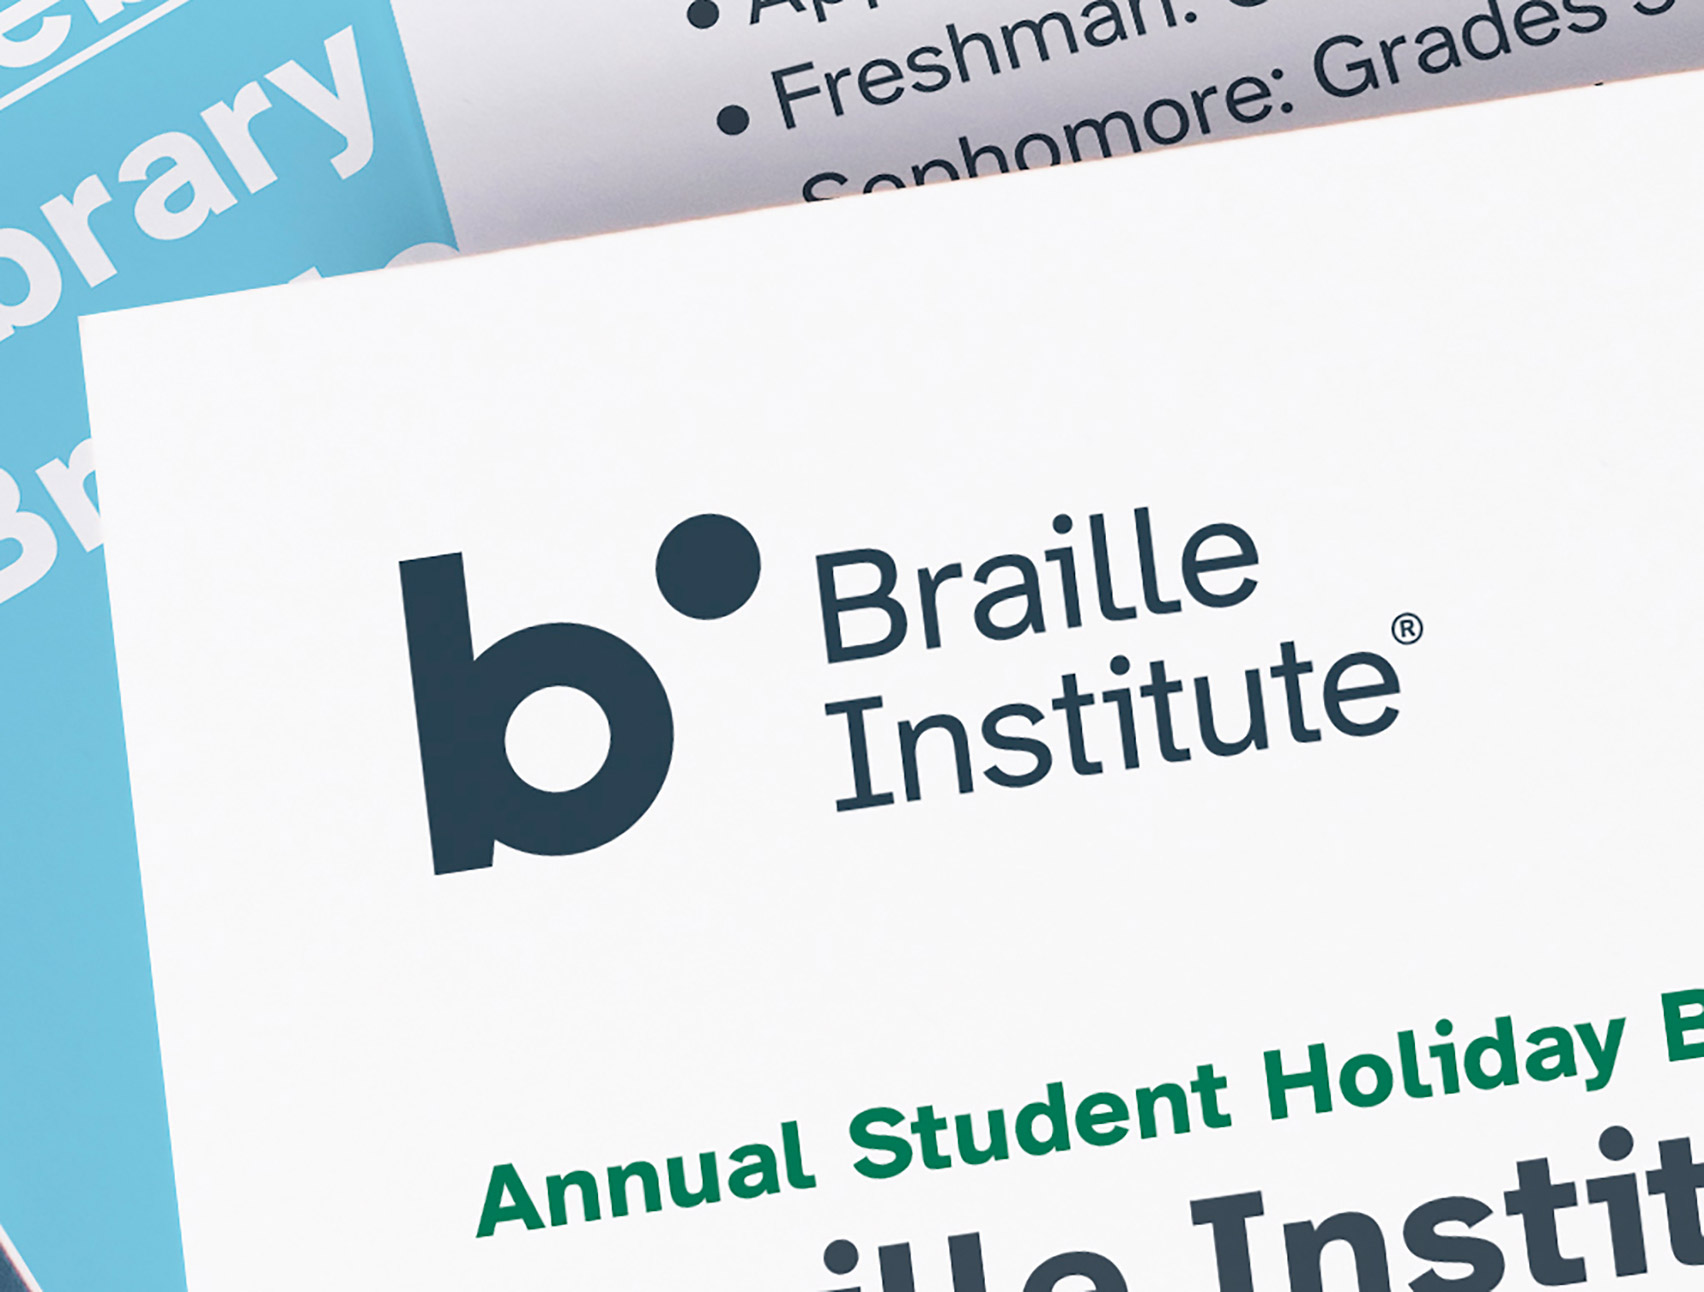 Atkinson Hyperlegible typeface for visually impaired on Braille Institute logo